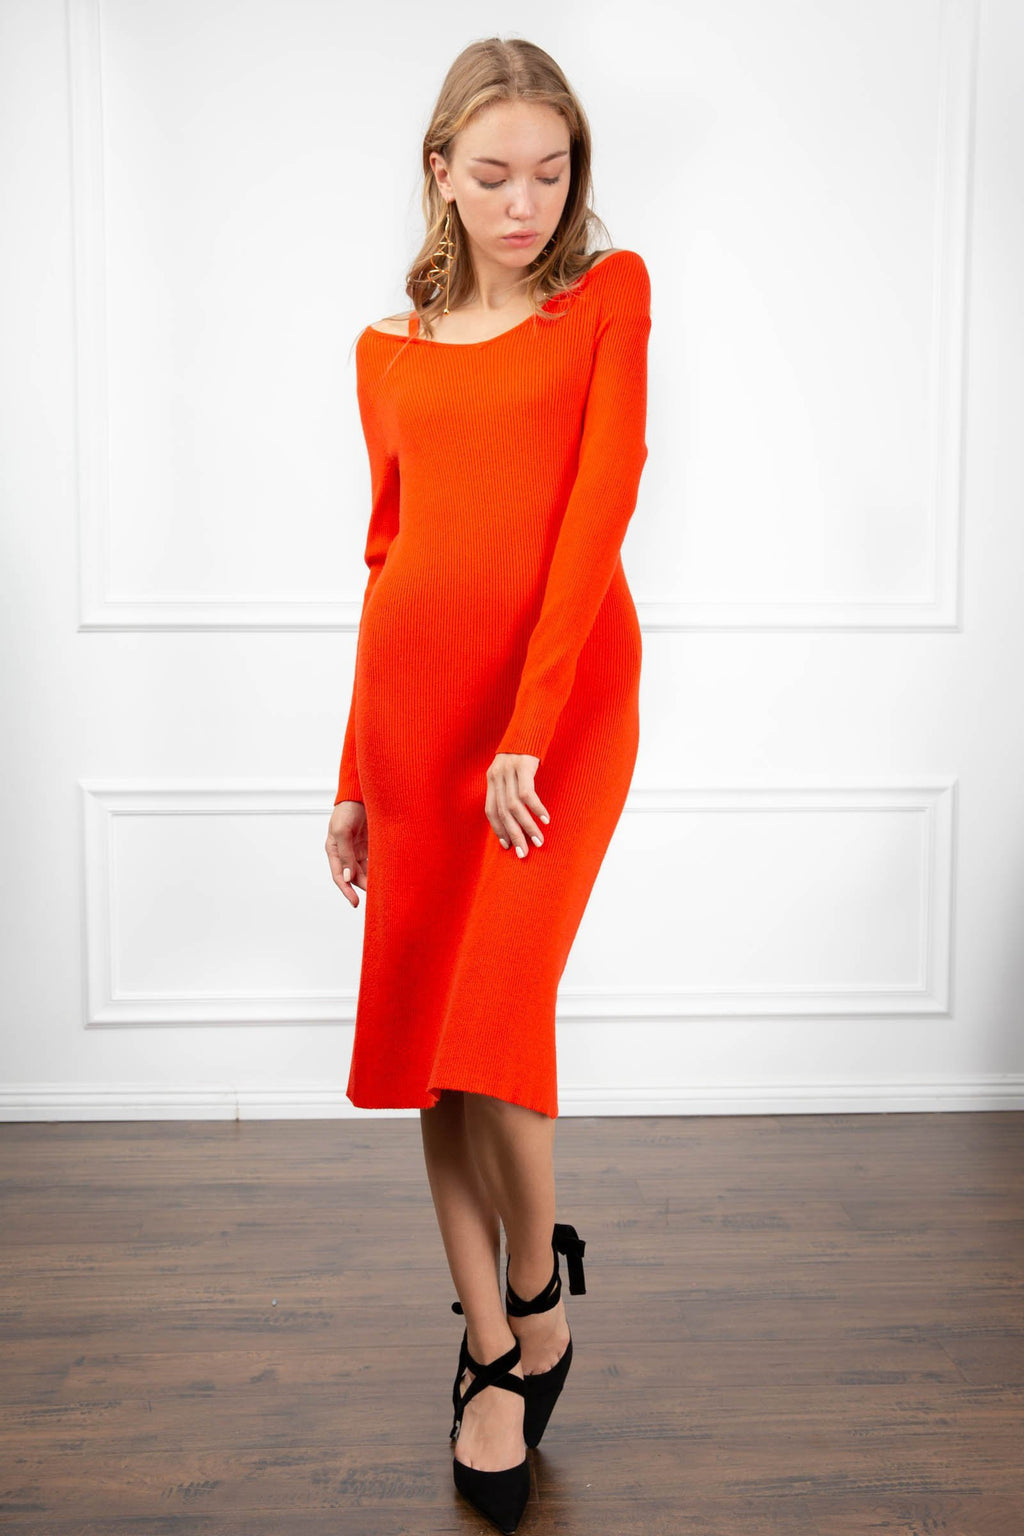 Celeste Knit Dress in Knitwear by J.ING - an L.A based women's fashion line